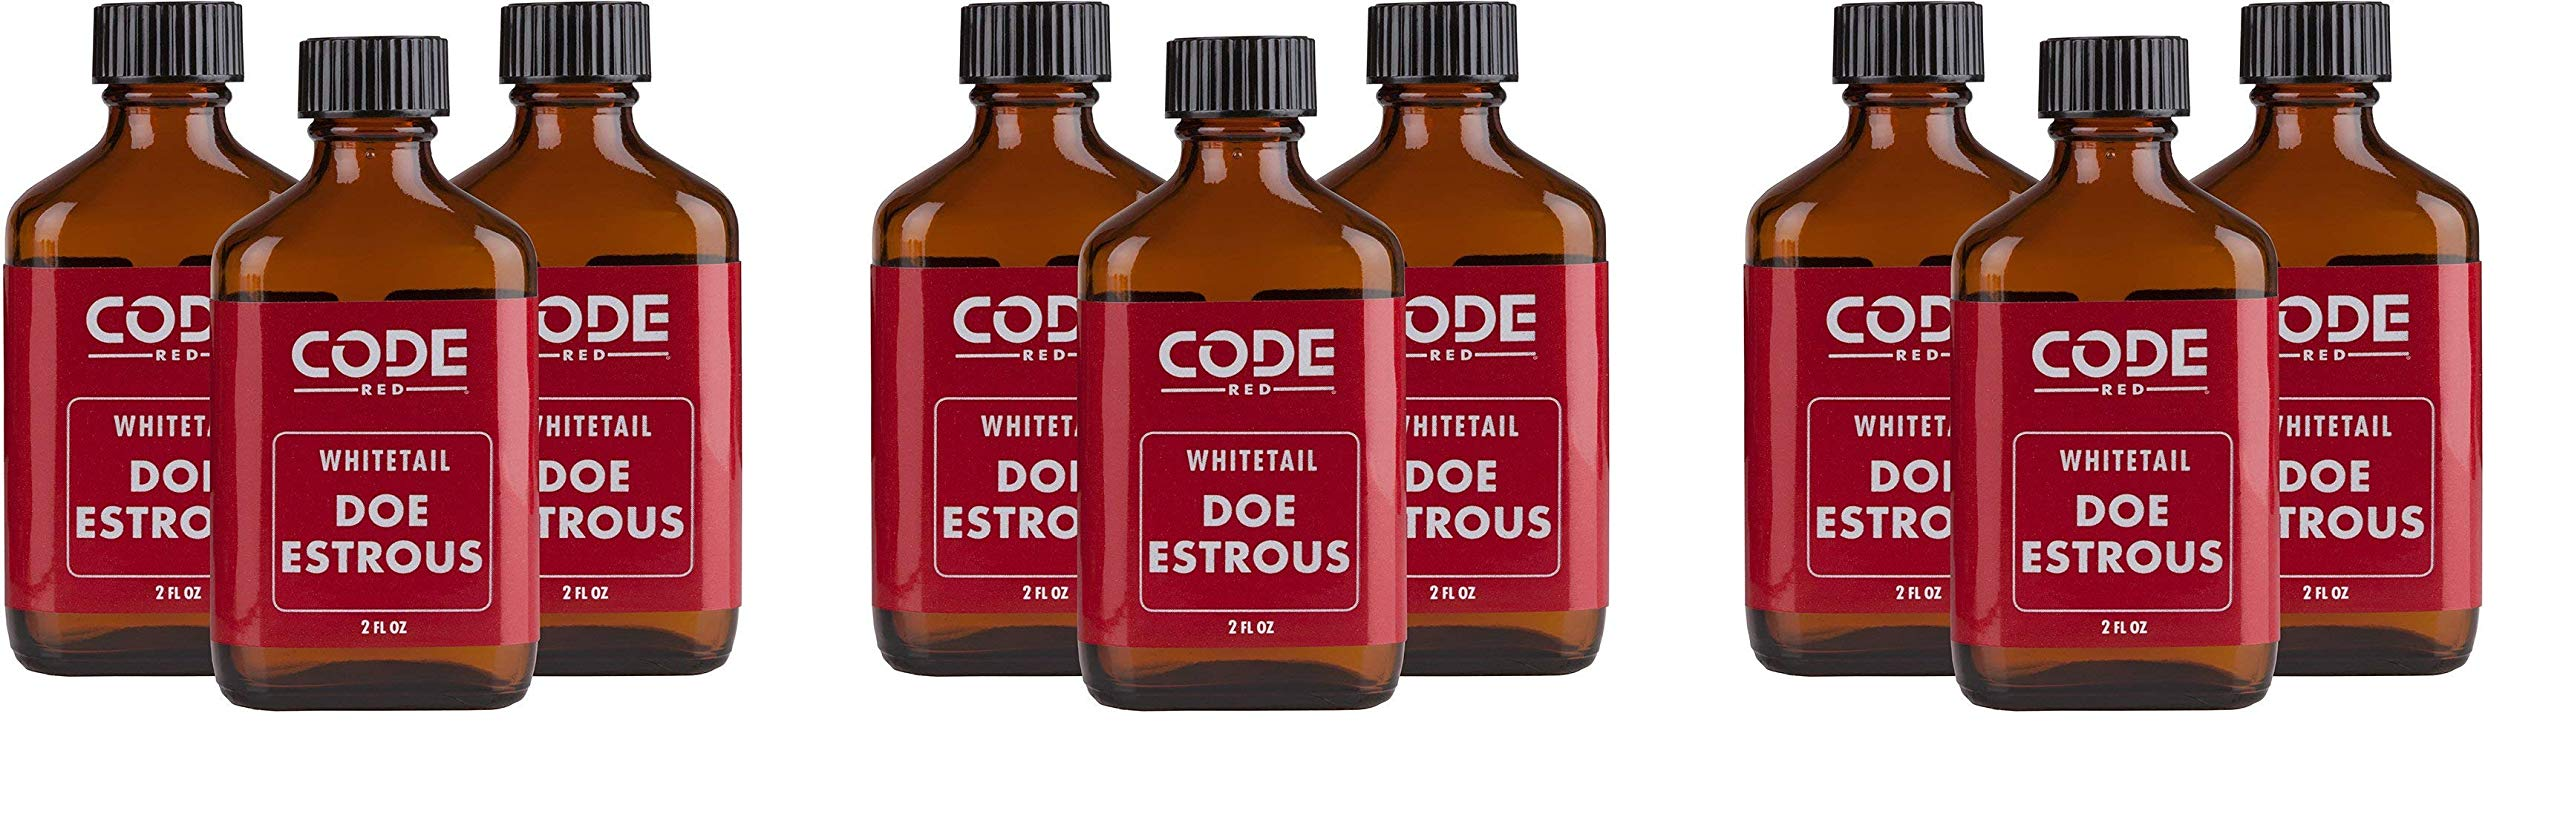 Code Blue Code Red Whitetail Doe Estrous Triple Pack (3-(Pack)) by Code Blue (Image #1)